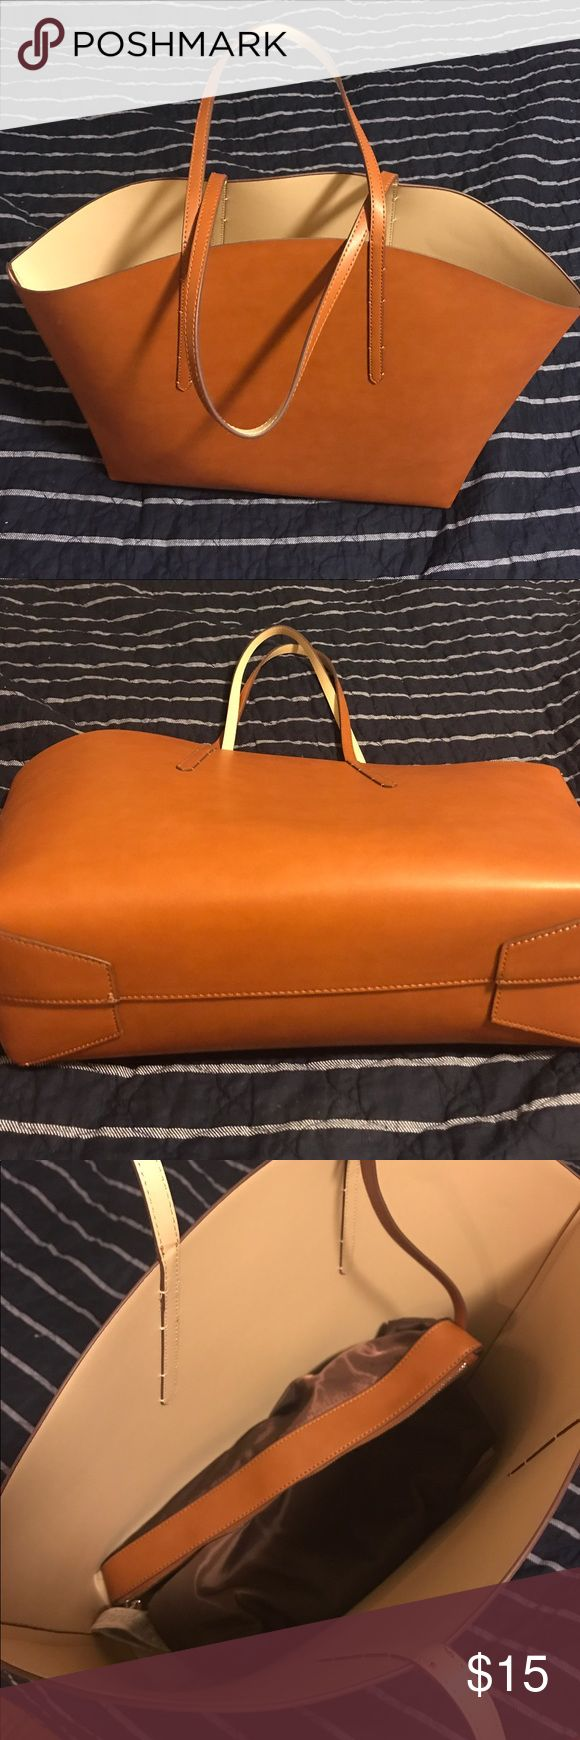 Zara Tote Bag Large tote bag with removable inner pouch (not real leather). Used only once. Zara Bags Totes